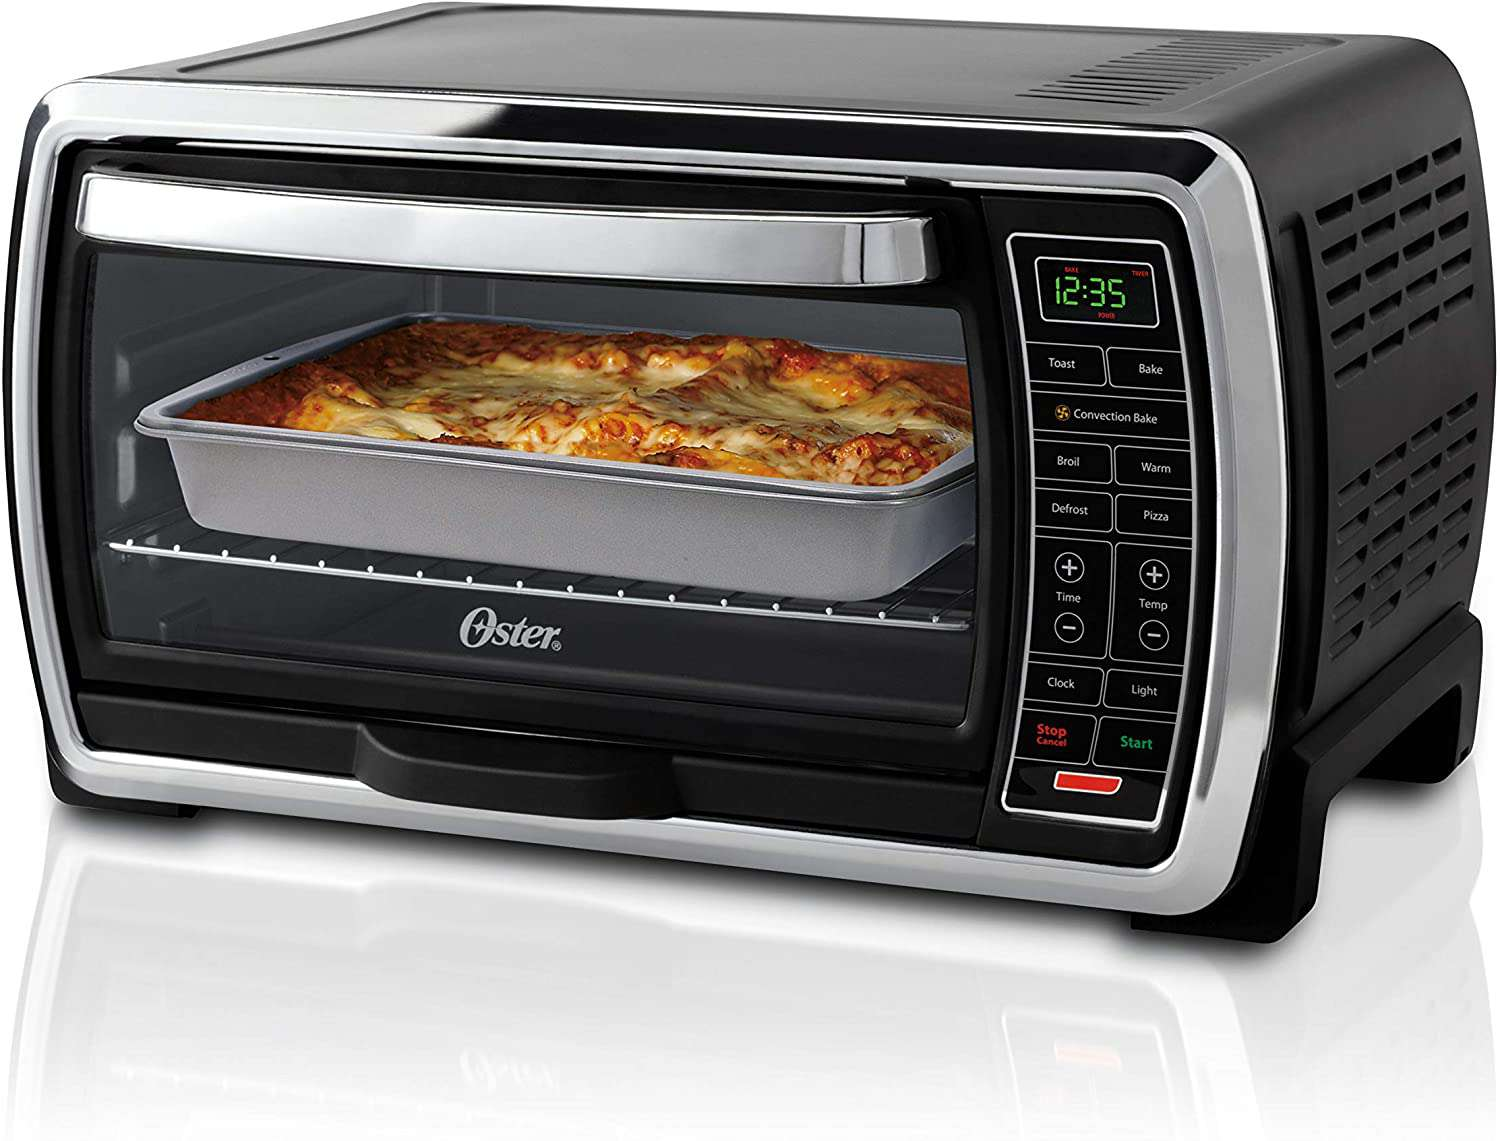 Oster Large Digital Countertop Oven